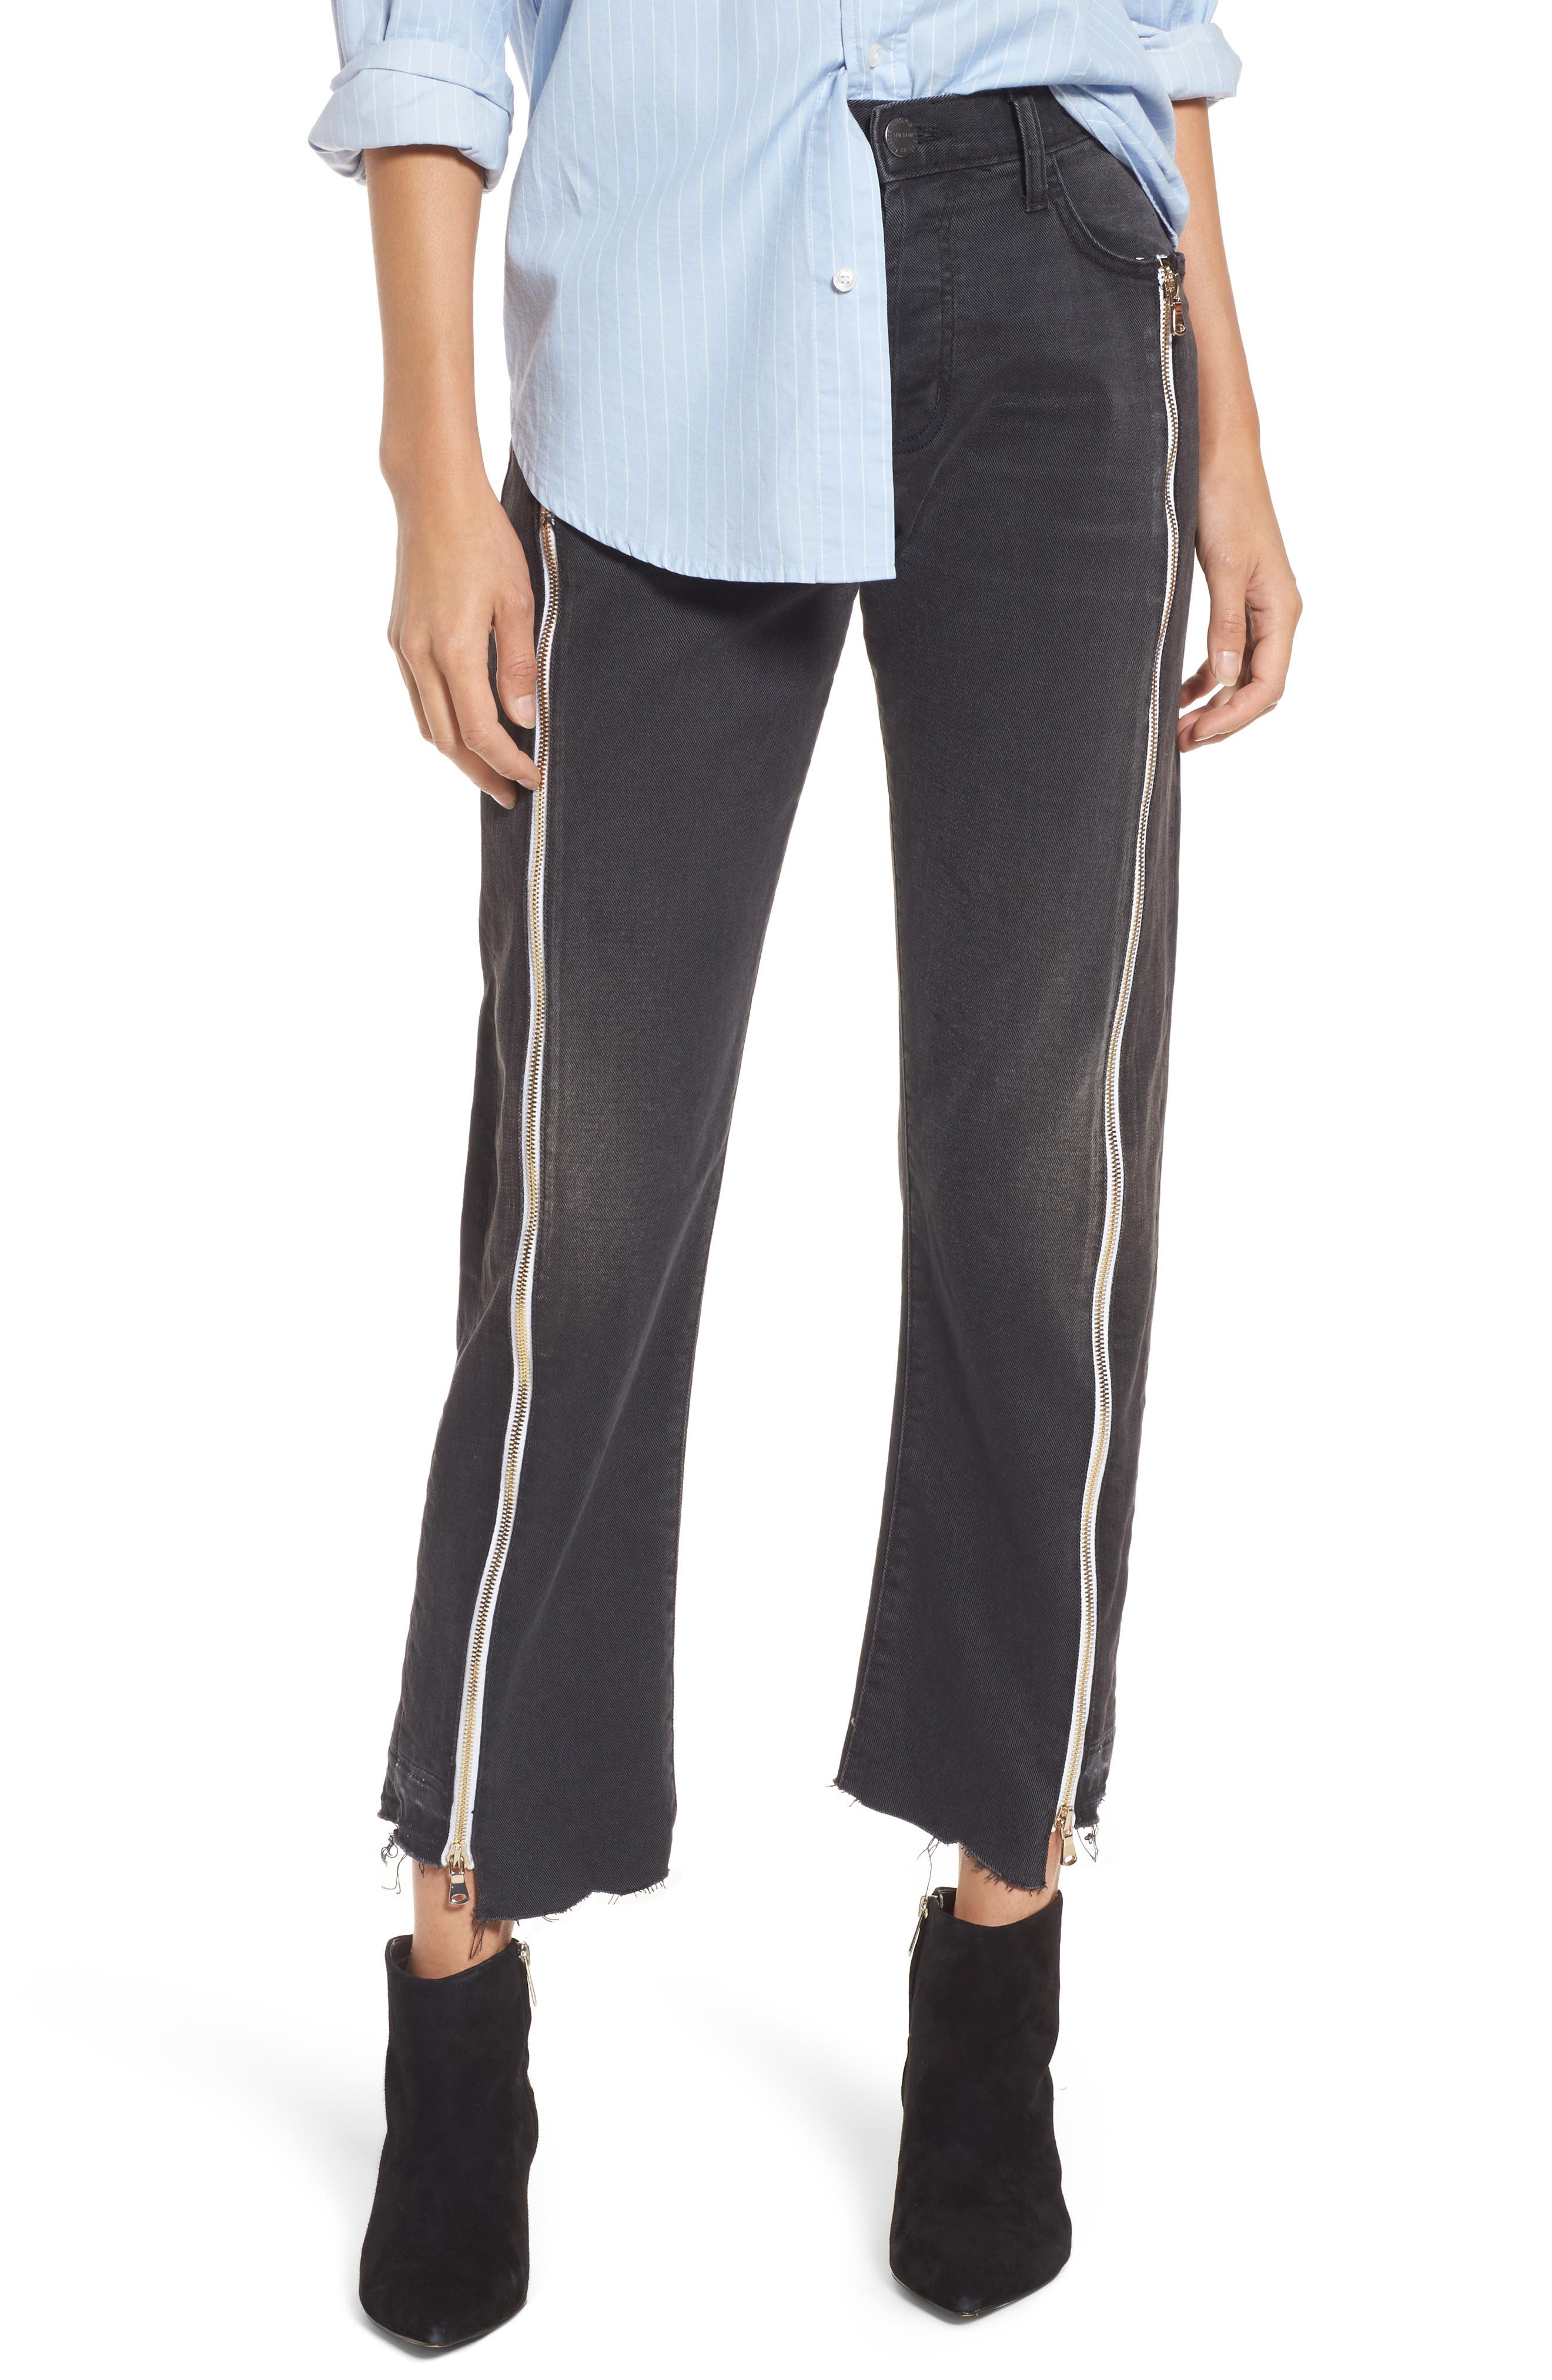 Main Image - Current/Elliott The Dallon Zip High Waist Crop Straight Jeans (Highline)